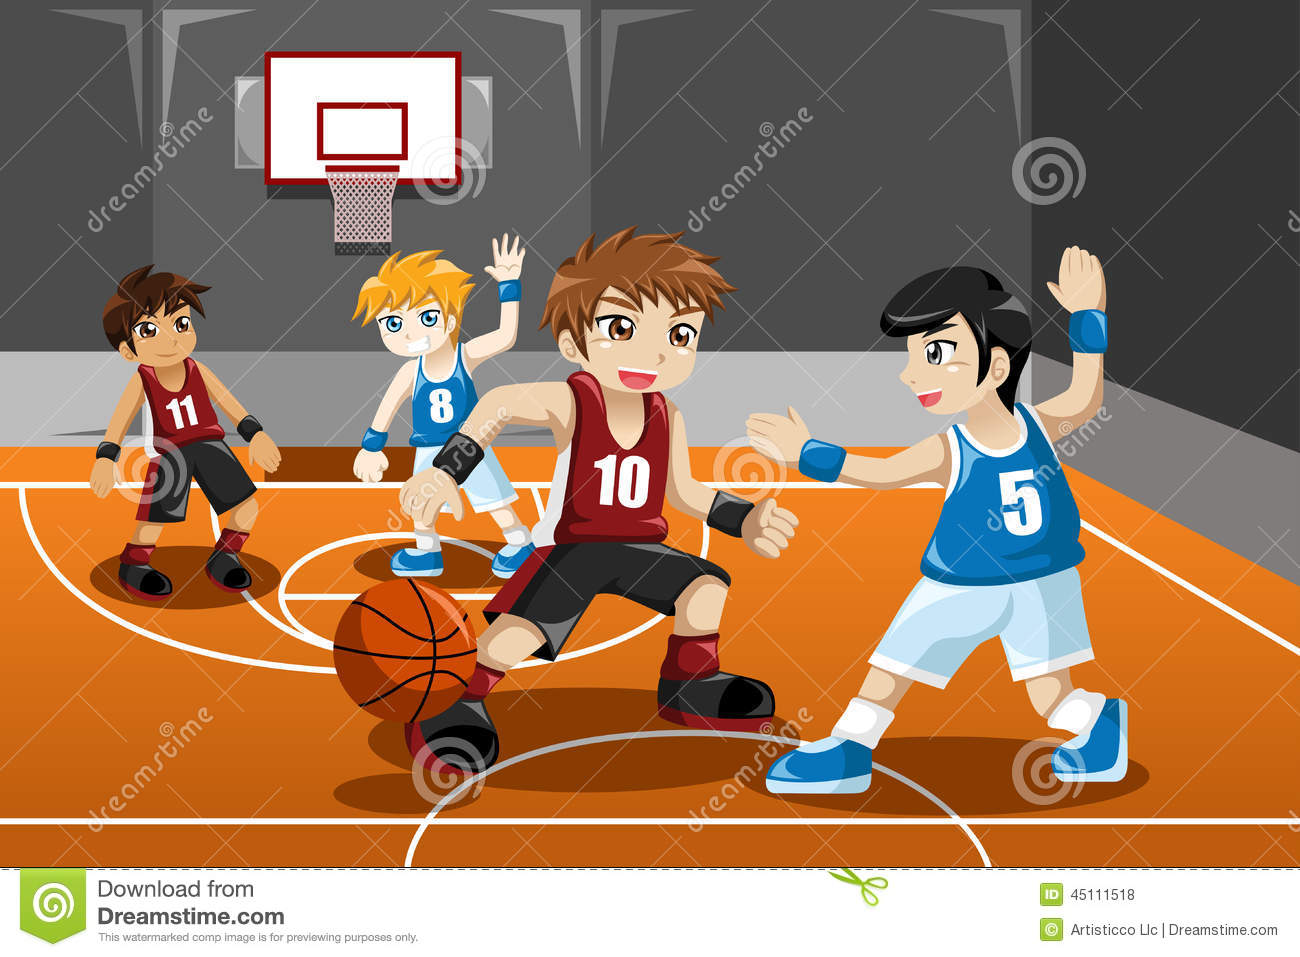 vector illustration of group of kids playing basketball indoor.